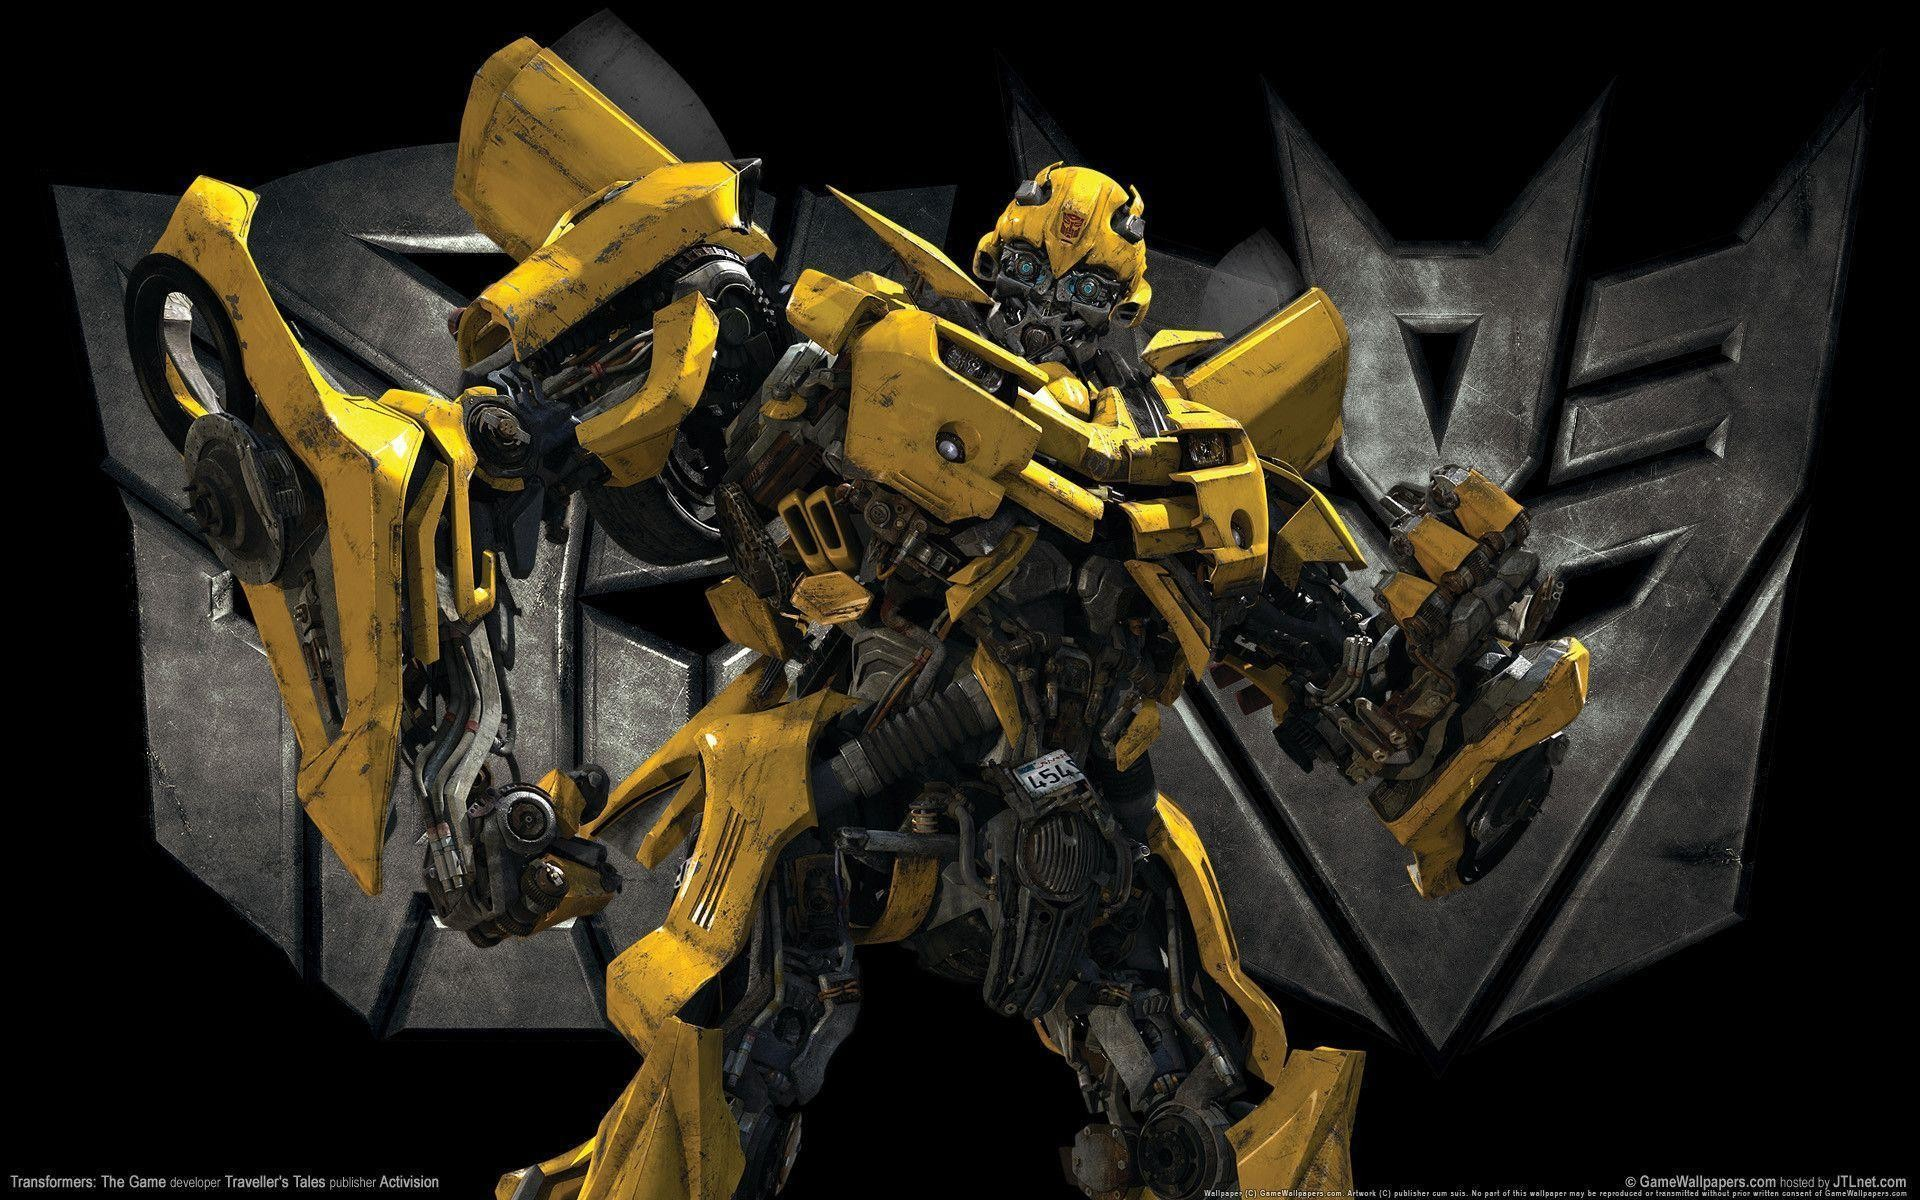 1920x1200 Transformers Bumblebee Wallpapers - Full HD wallpaper search - page 3